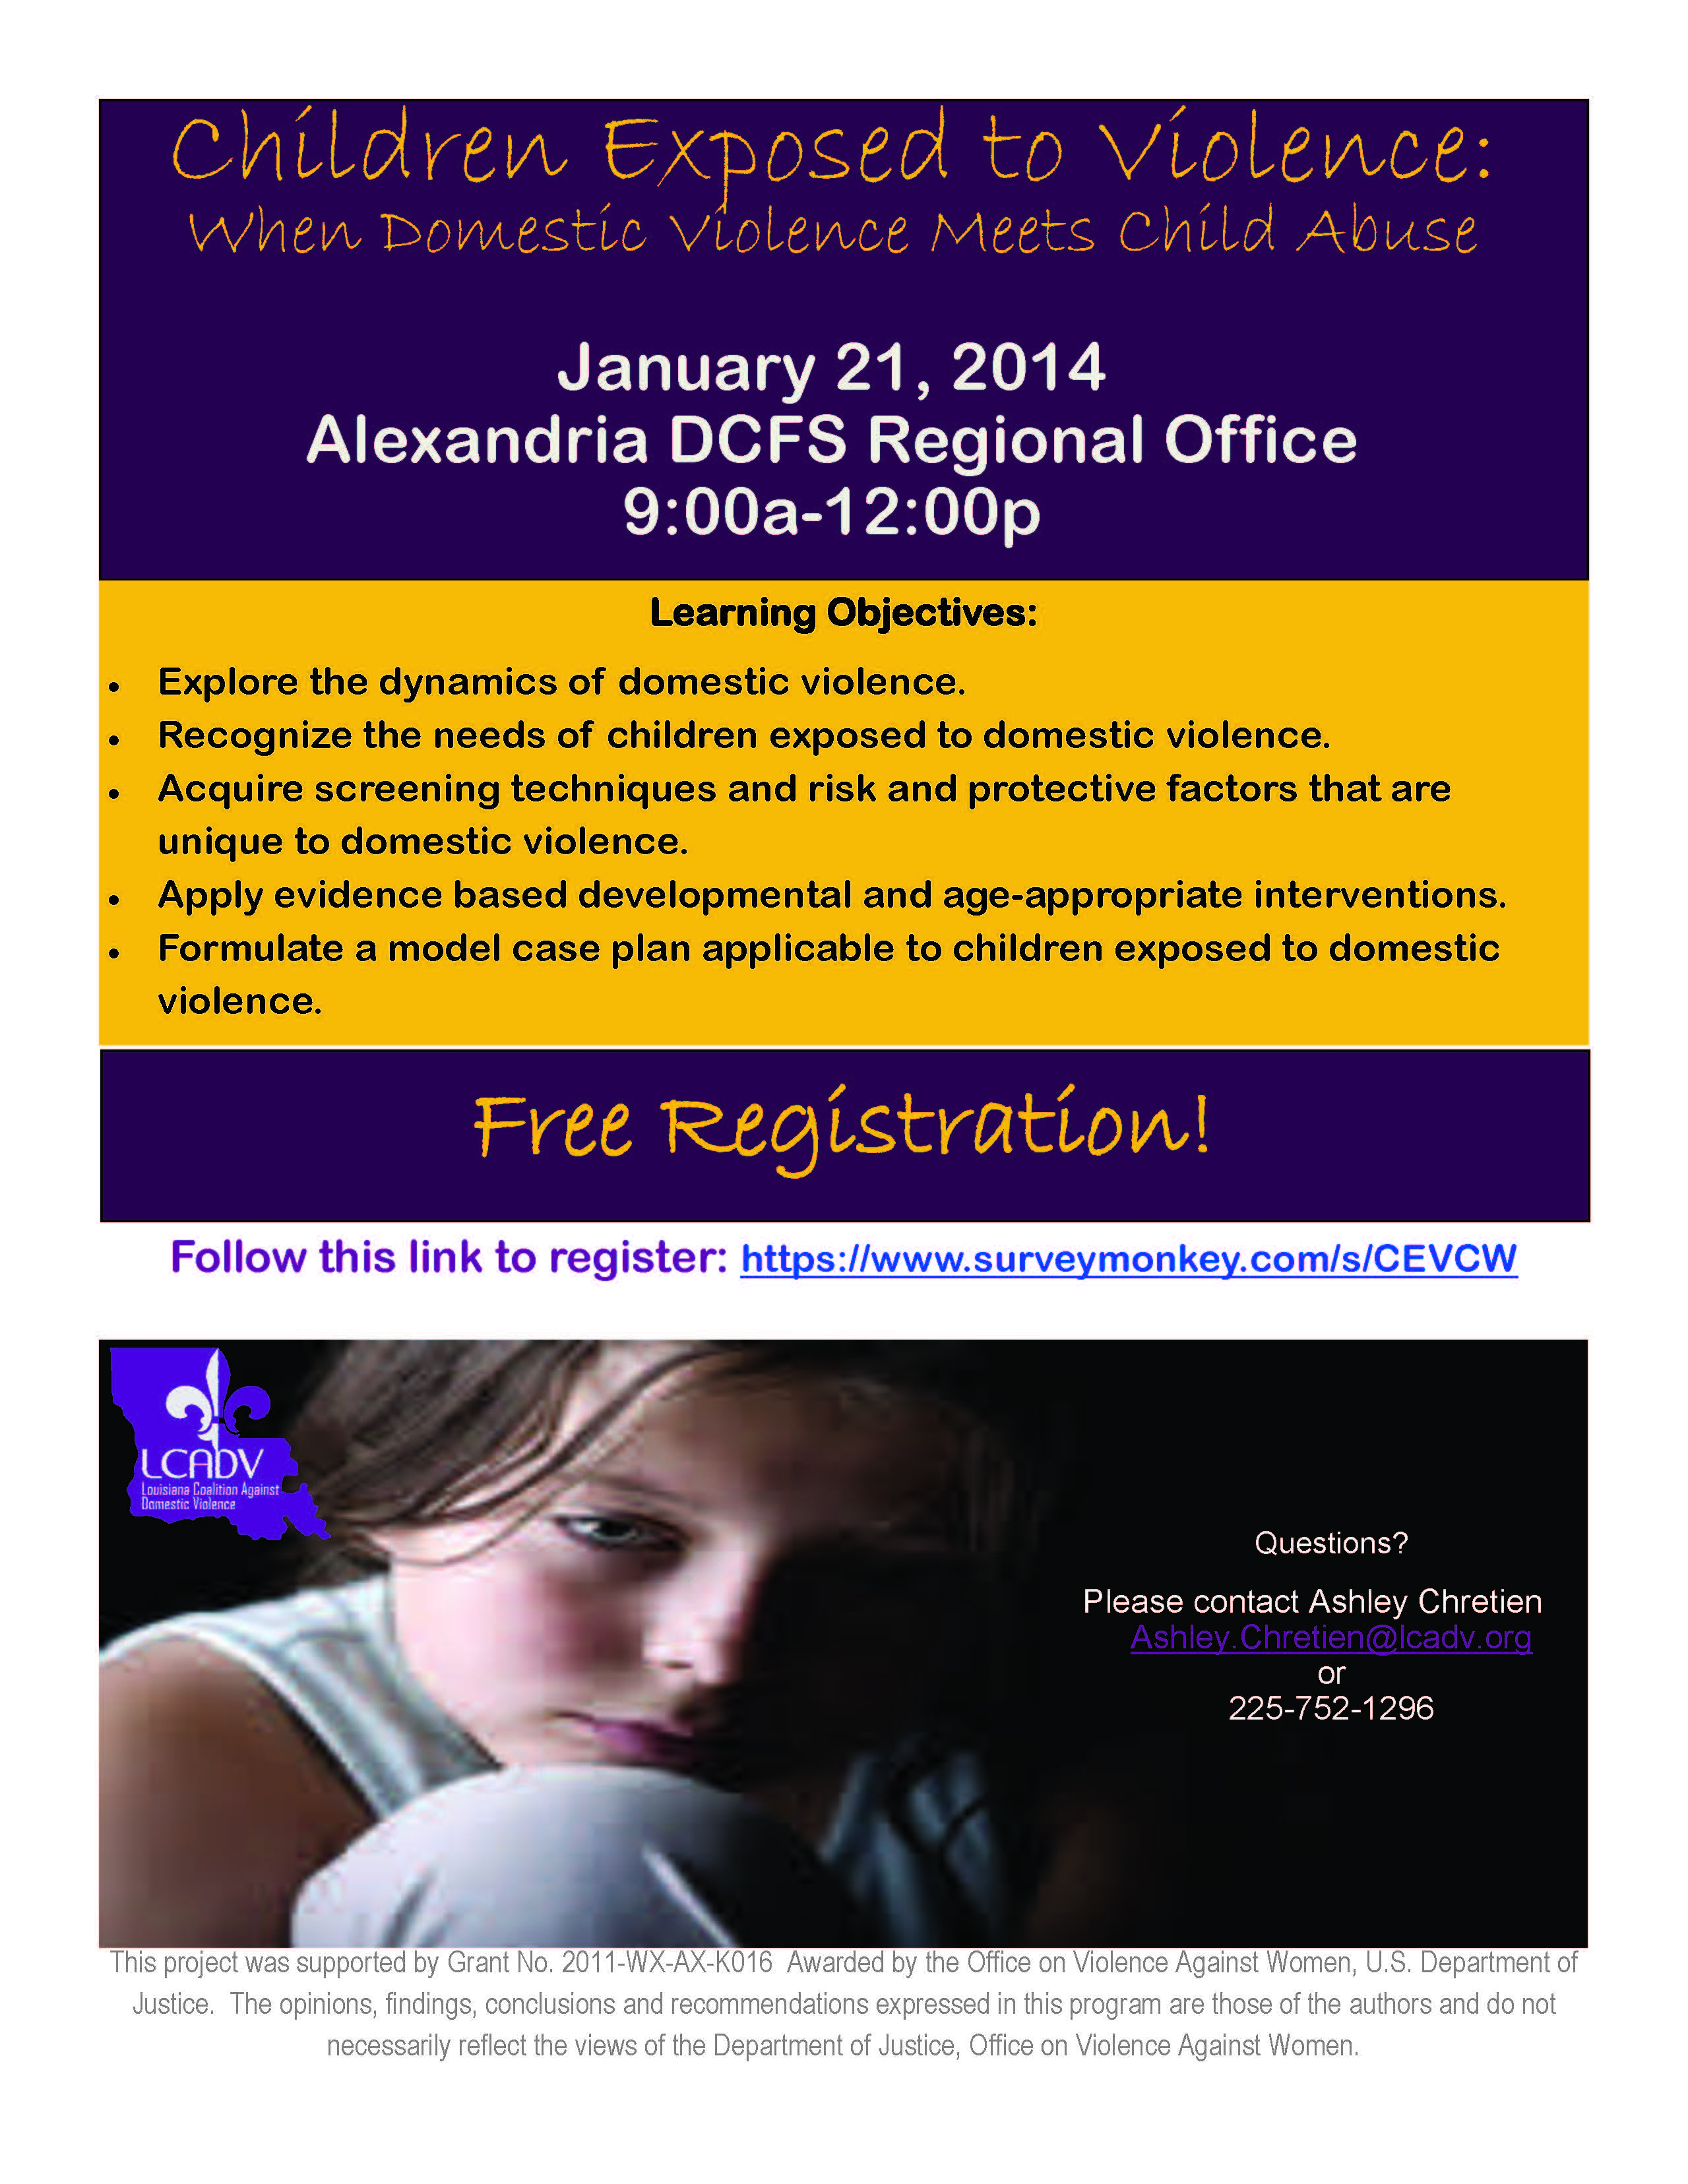 Children Exposed to Violence: When Domestic Violence Meets Child Abuse @ DCFS Regional Office | Alexandria | Louisiana | United States